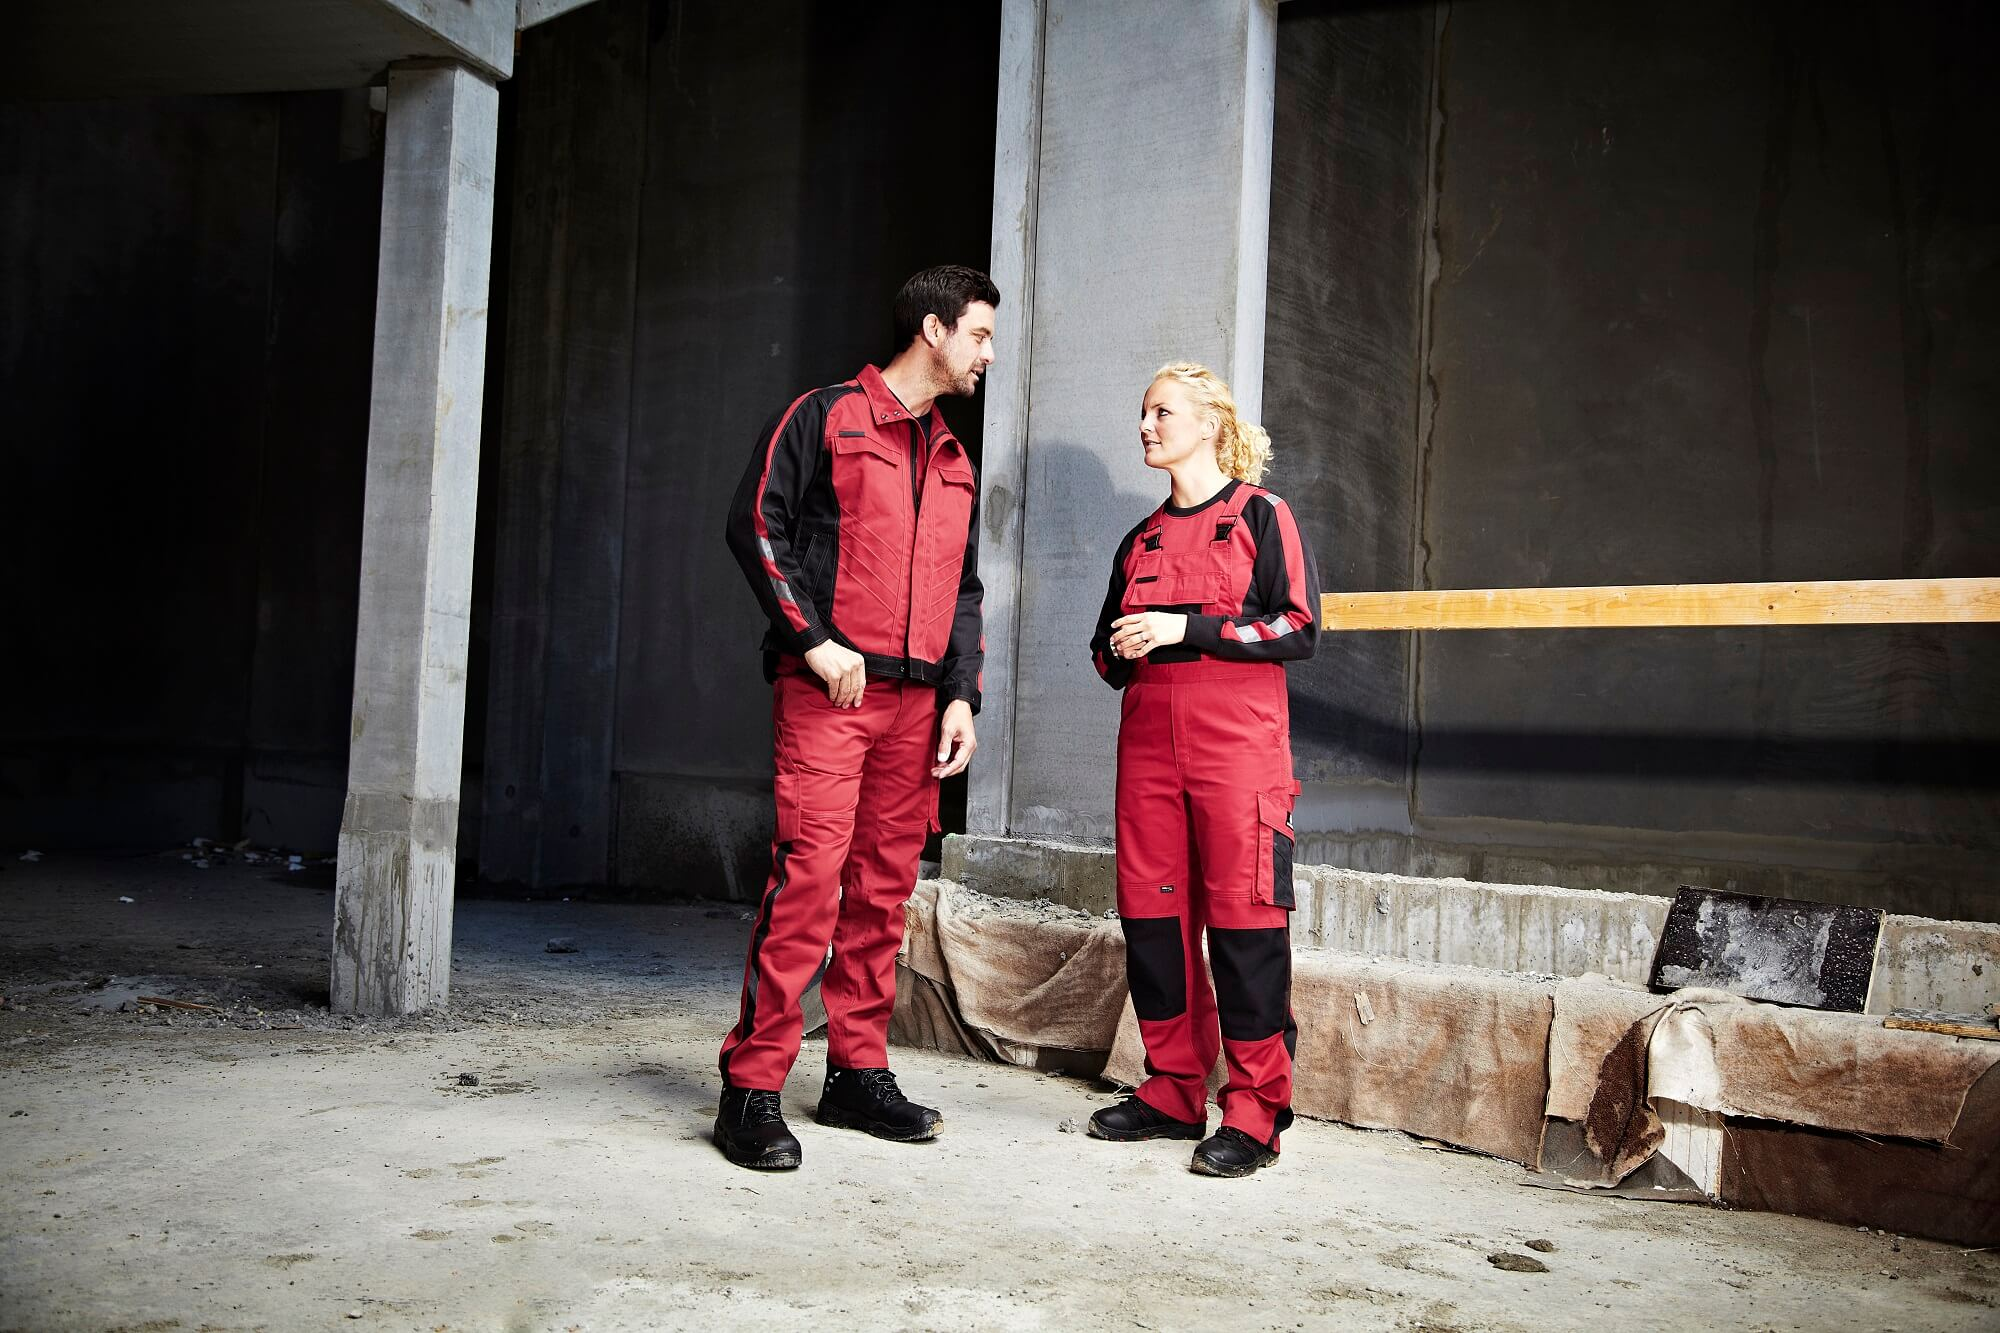 Woman & Man - Environment - Workwear Red